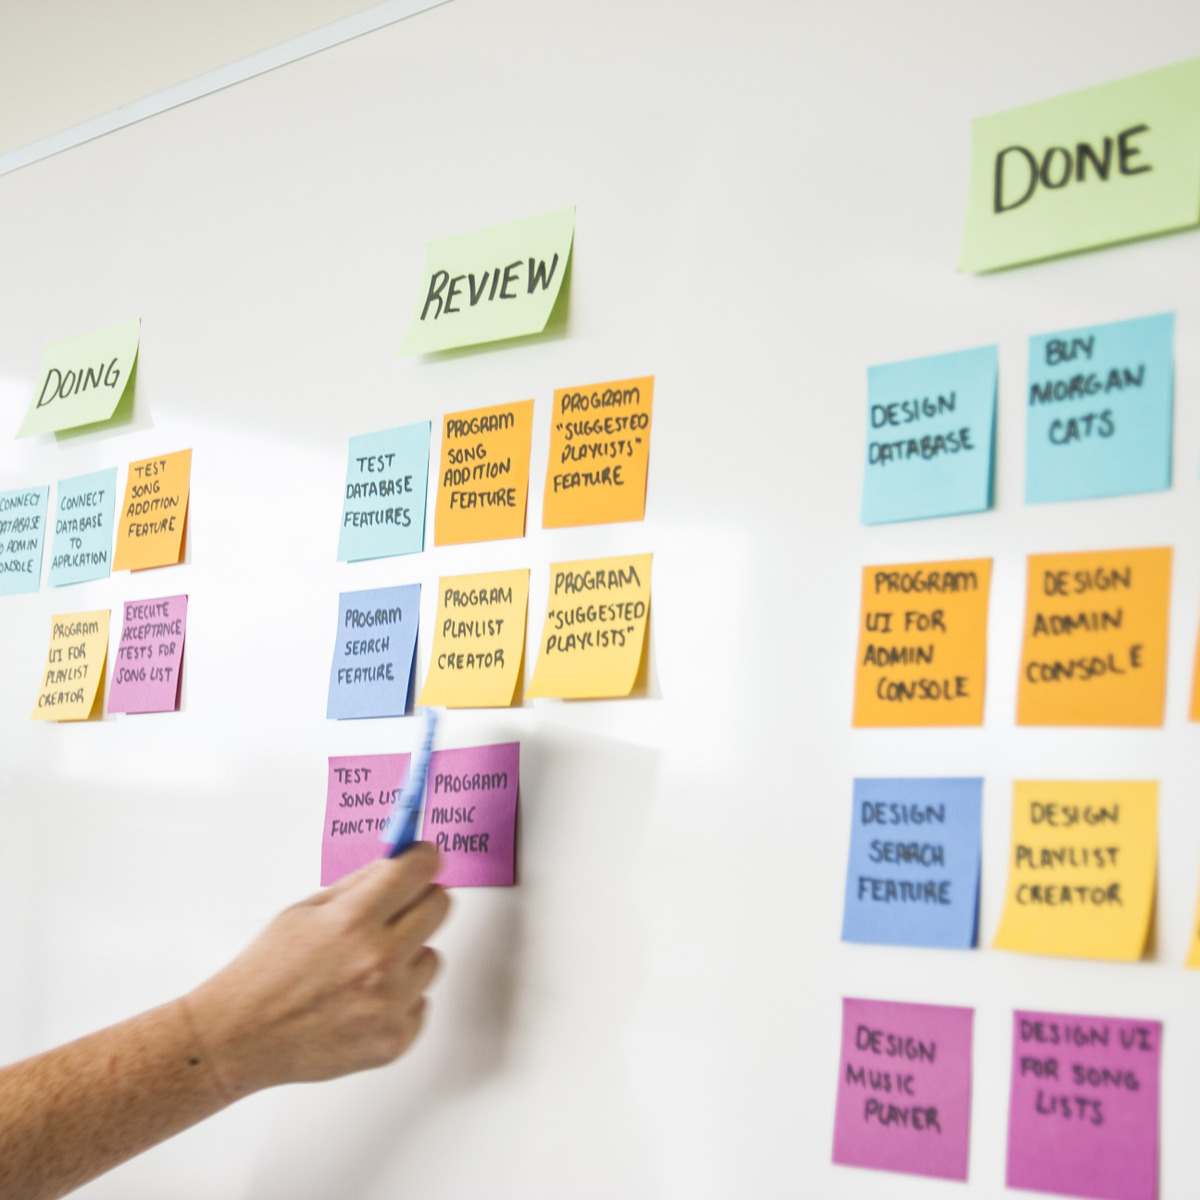 Software Processes and Agile Practices course image